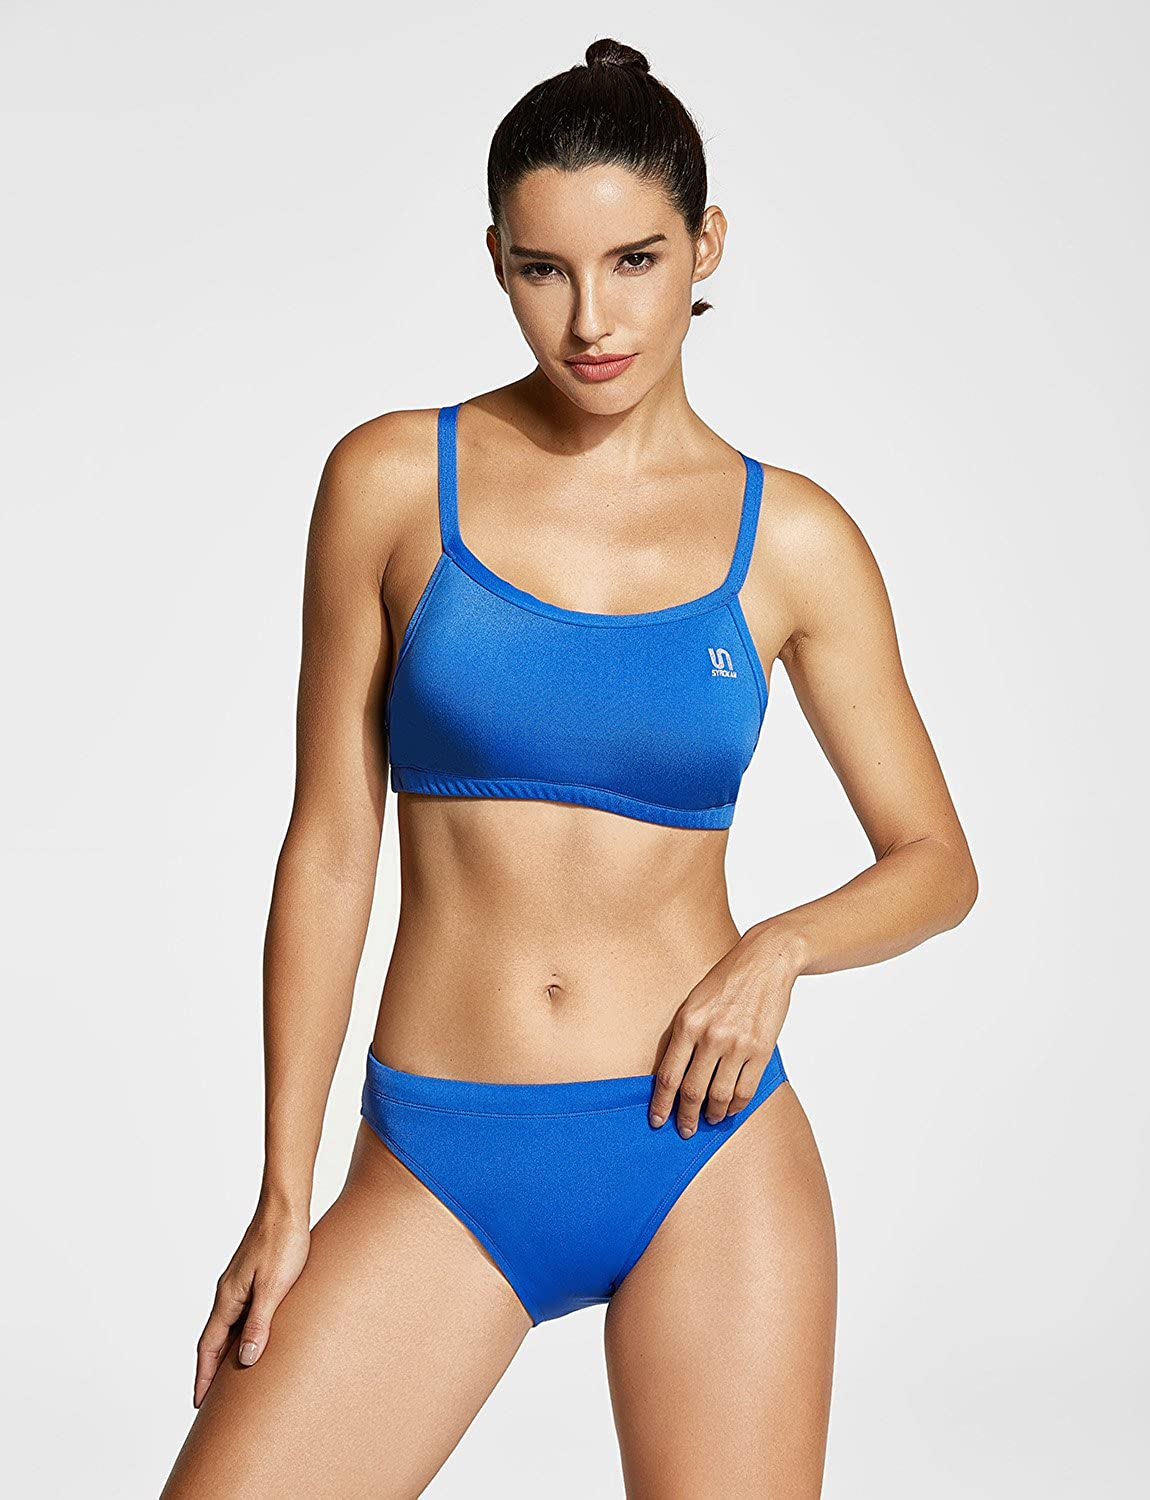 3892be1af02de Amazon.com  SYROKAN Women s Athletic Bikini Workout Two-Piece Sport Swimsuit   Clothing